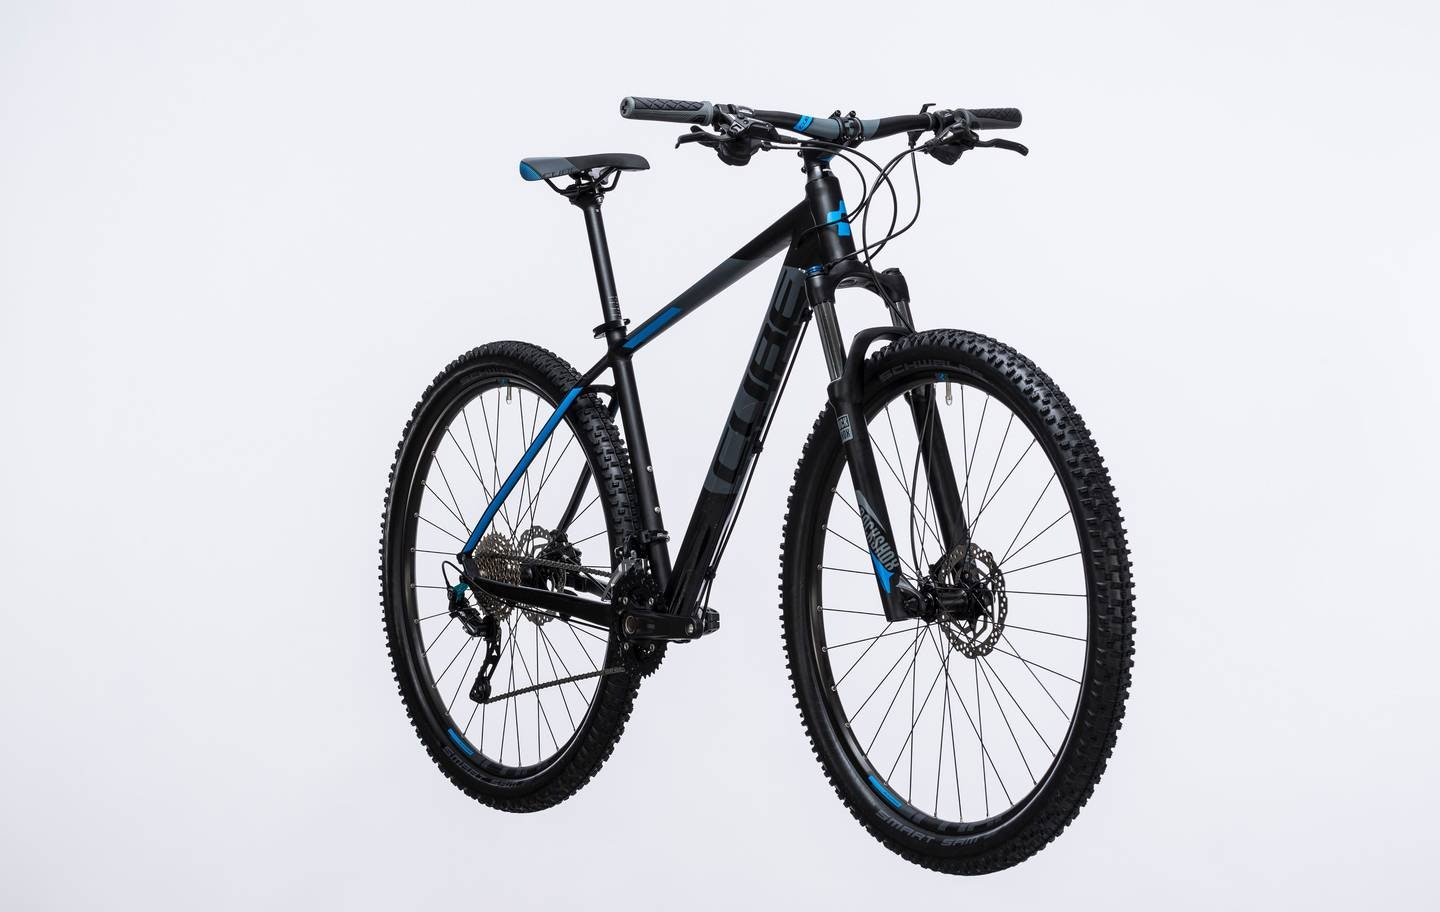 cube attention 2017 hardtail mountain bikes for sale in. Black Bedroom Furniture Sets. Home Design Ideas